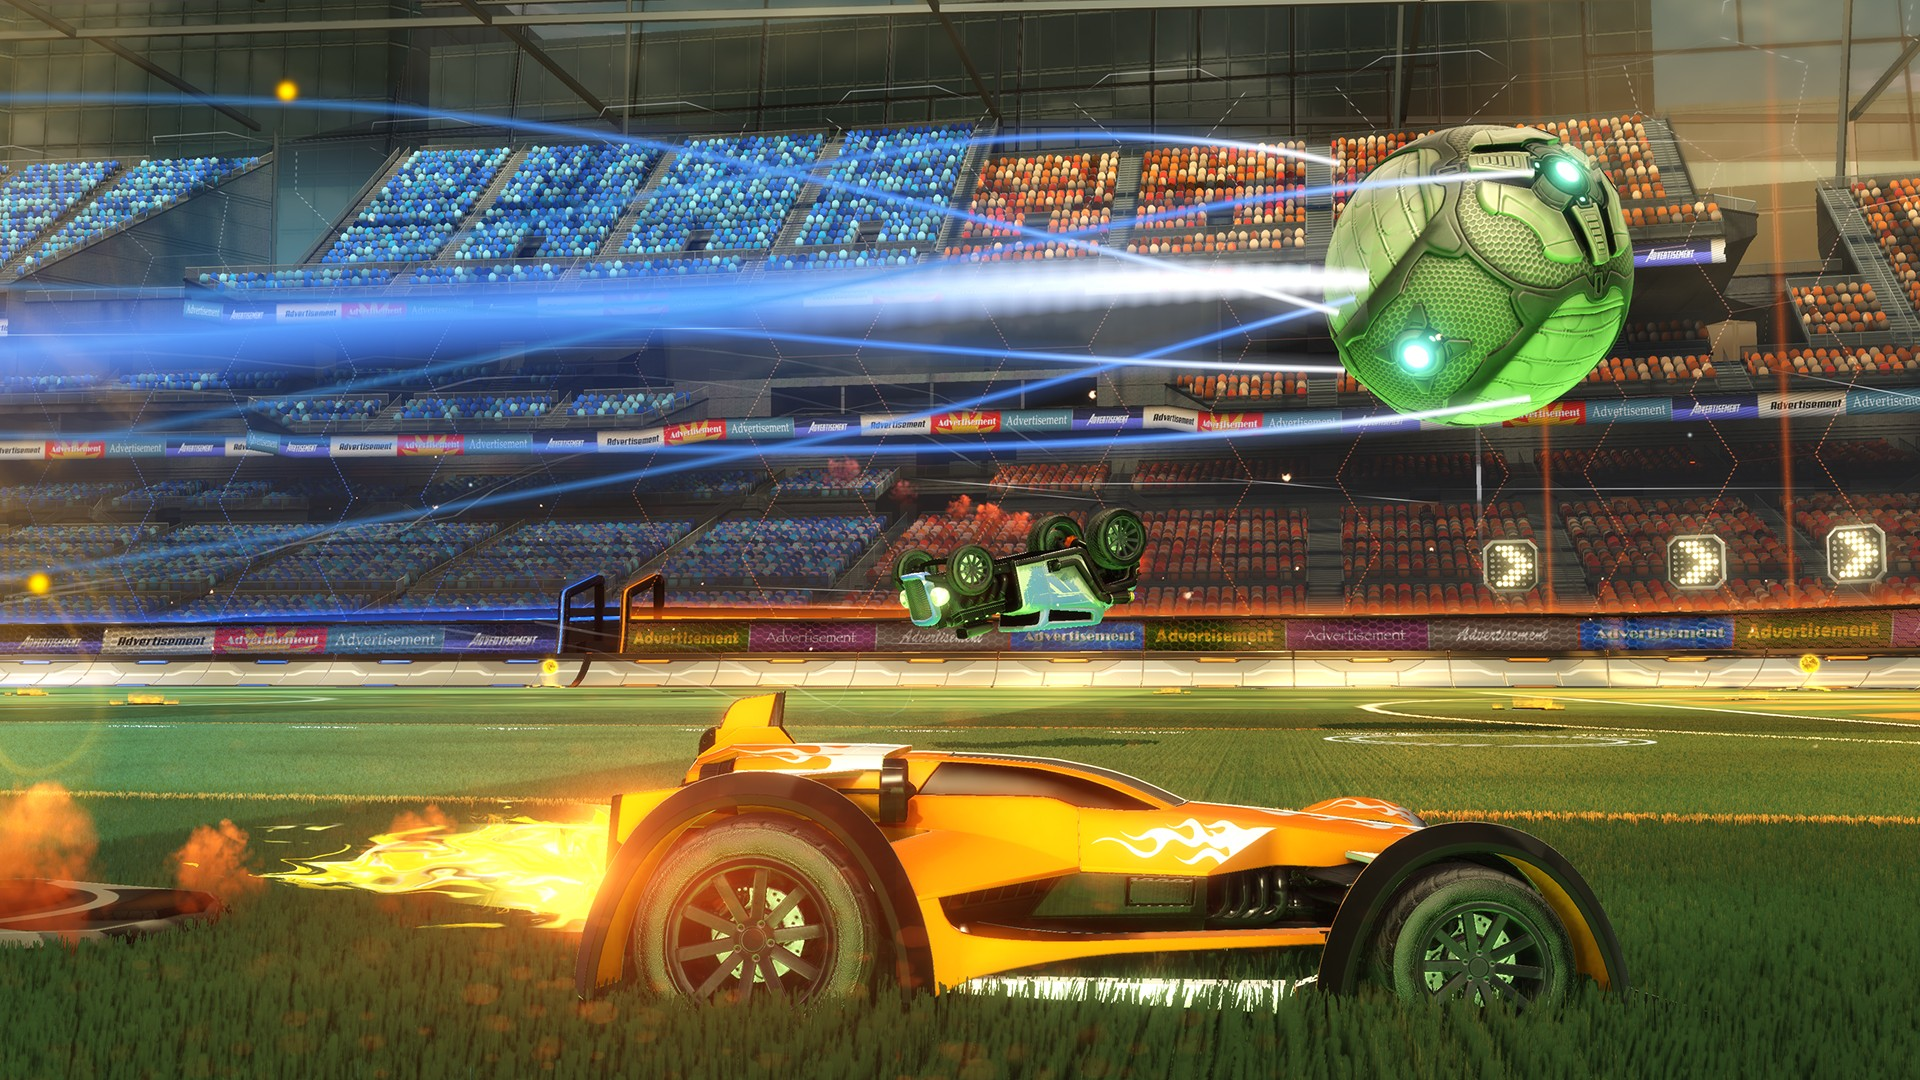 Rocket league screen 6 jpg